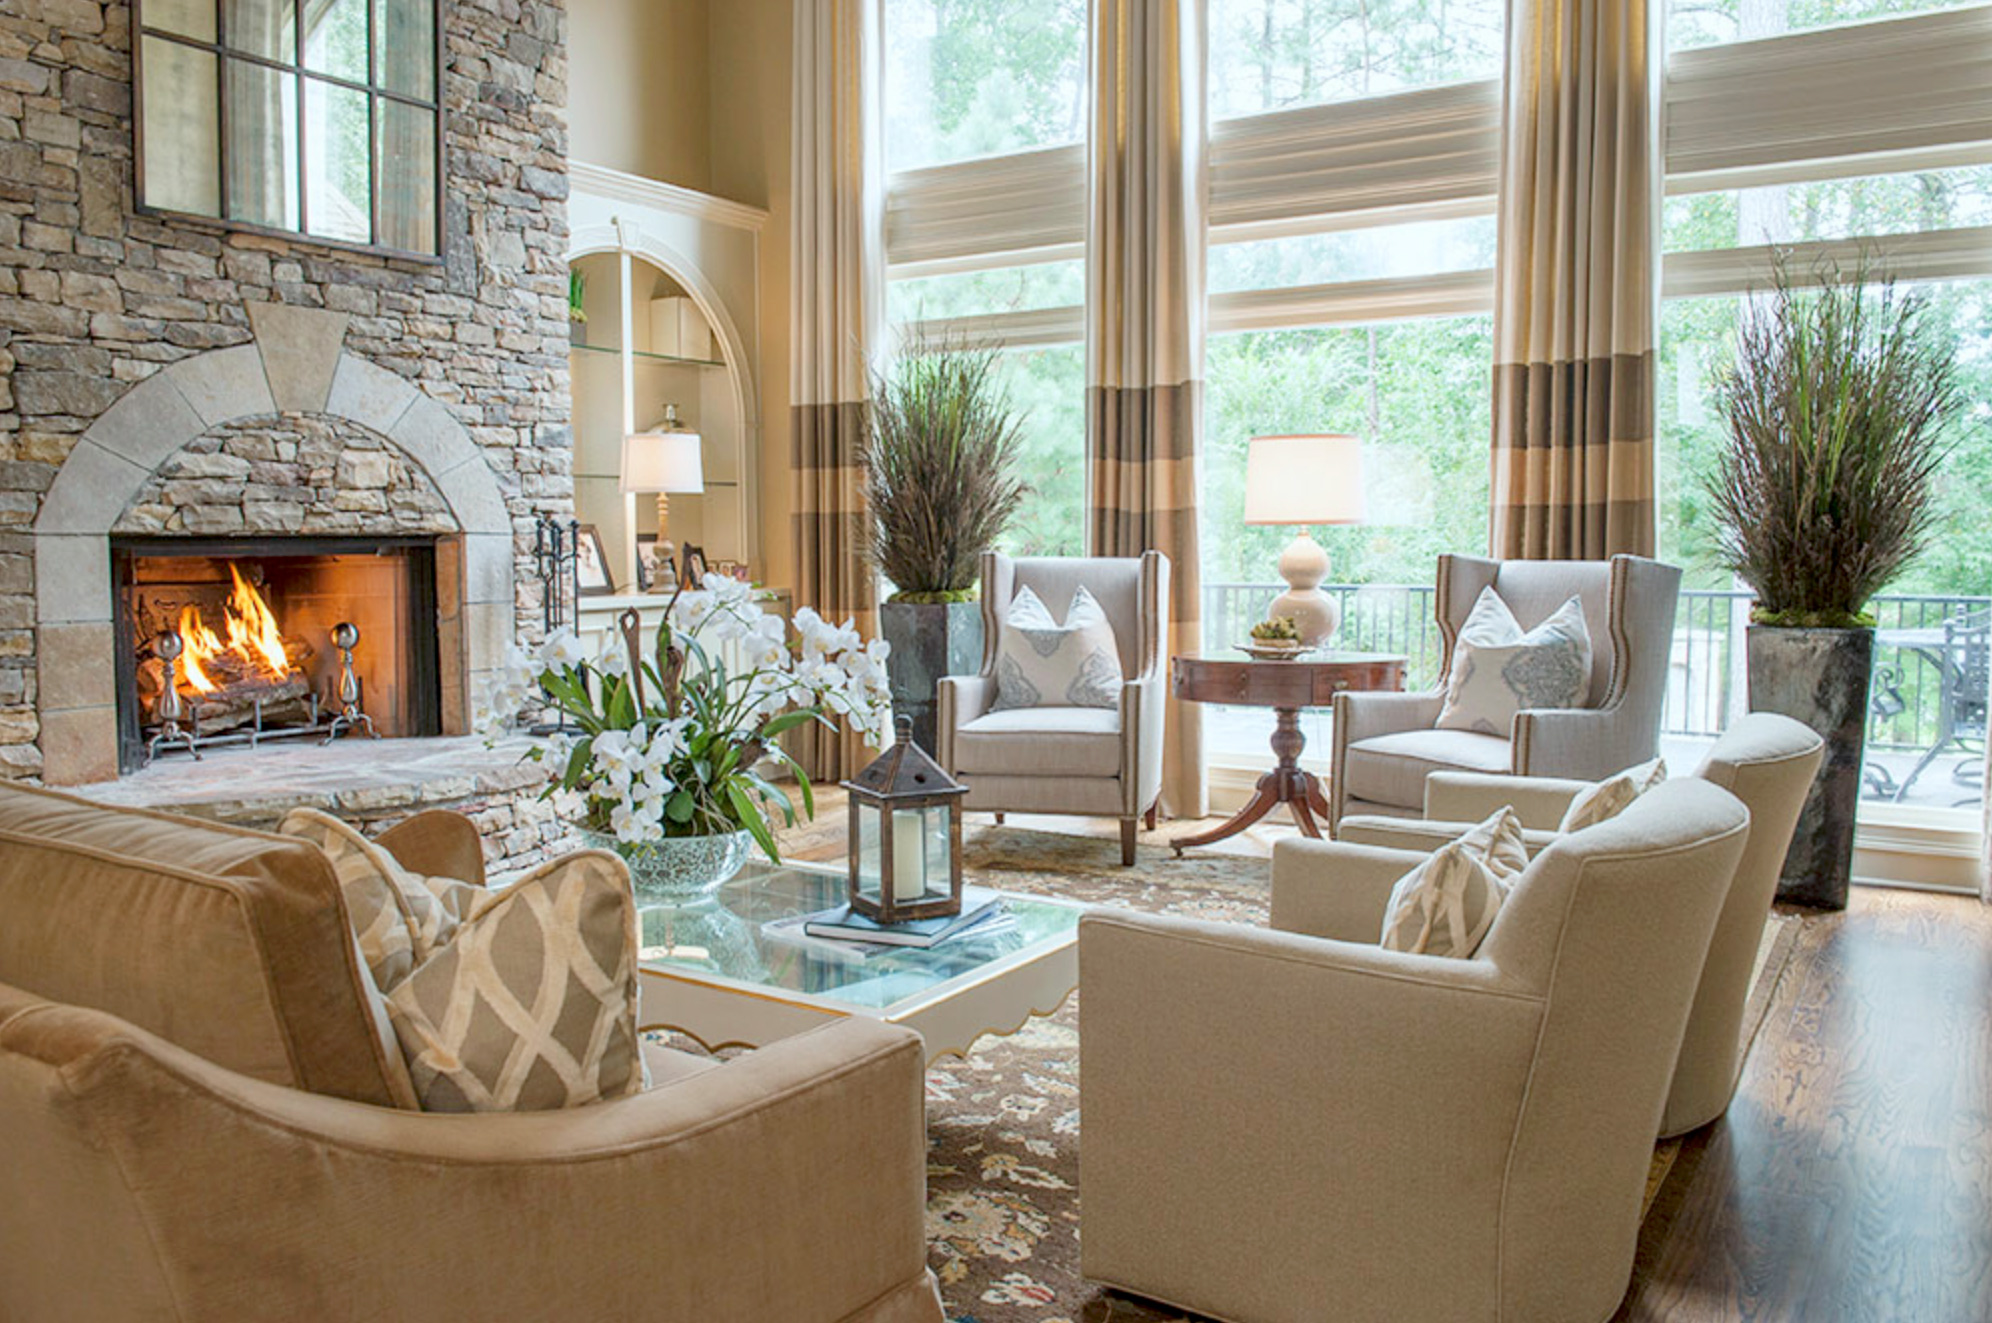 a roaring fireplace with comfortable chairs